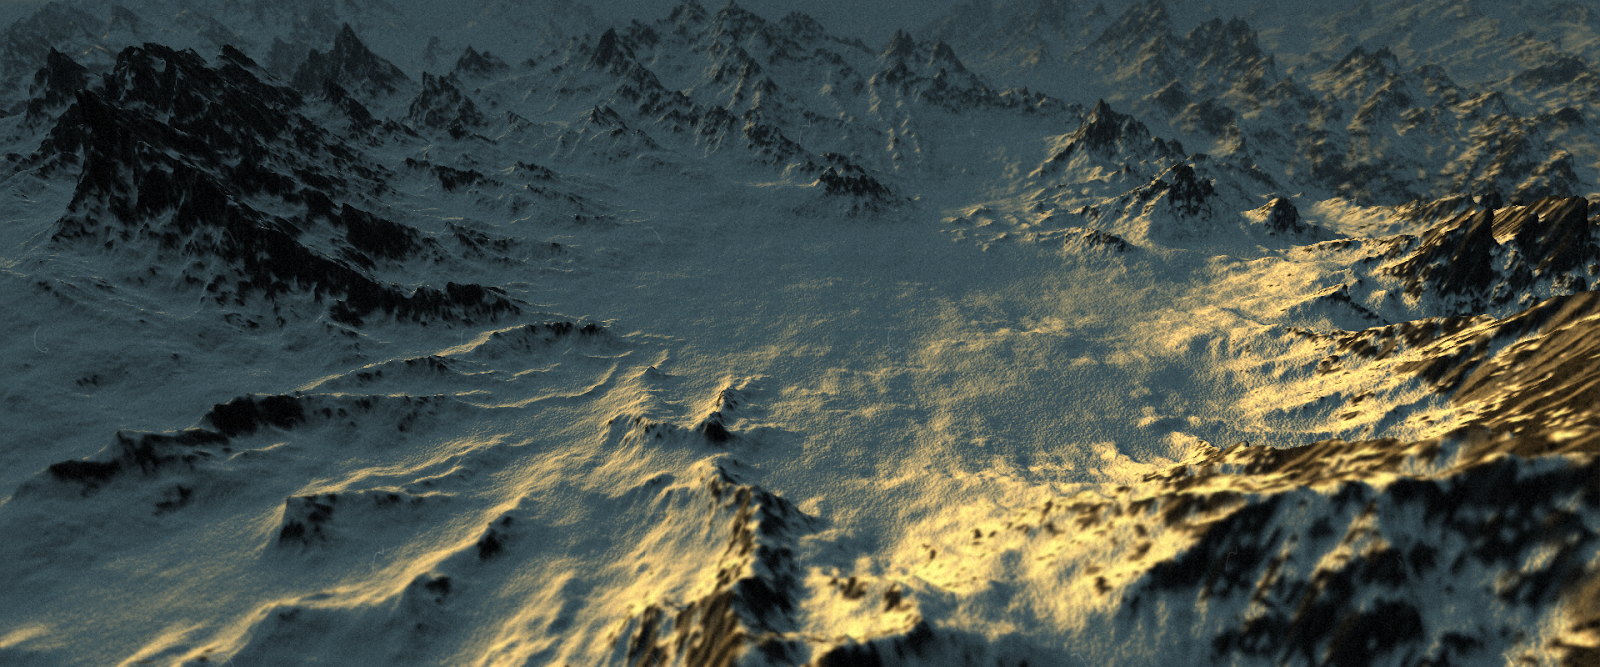 Quotes about Terrain (85 quotes)